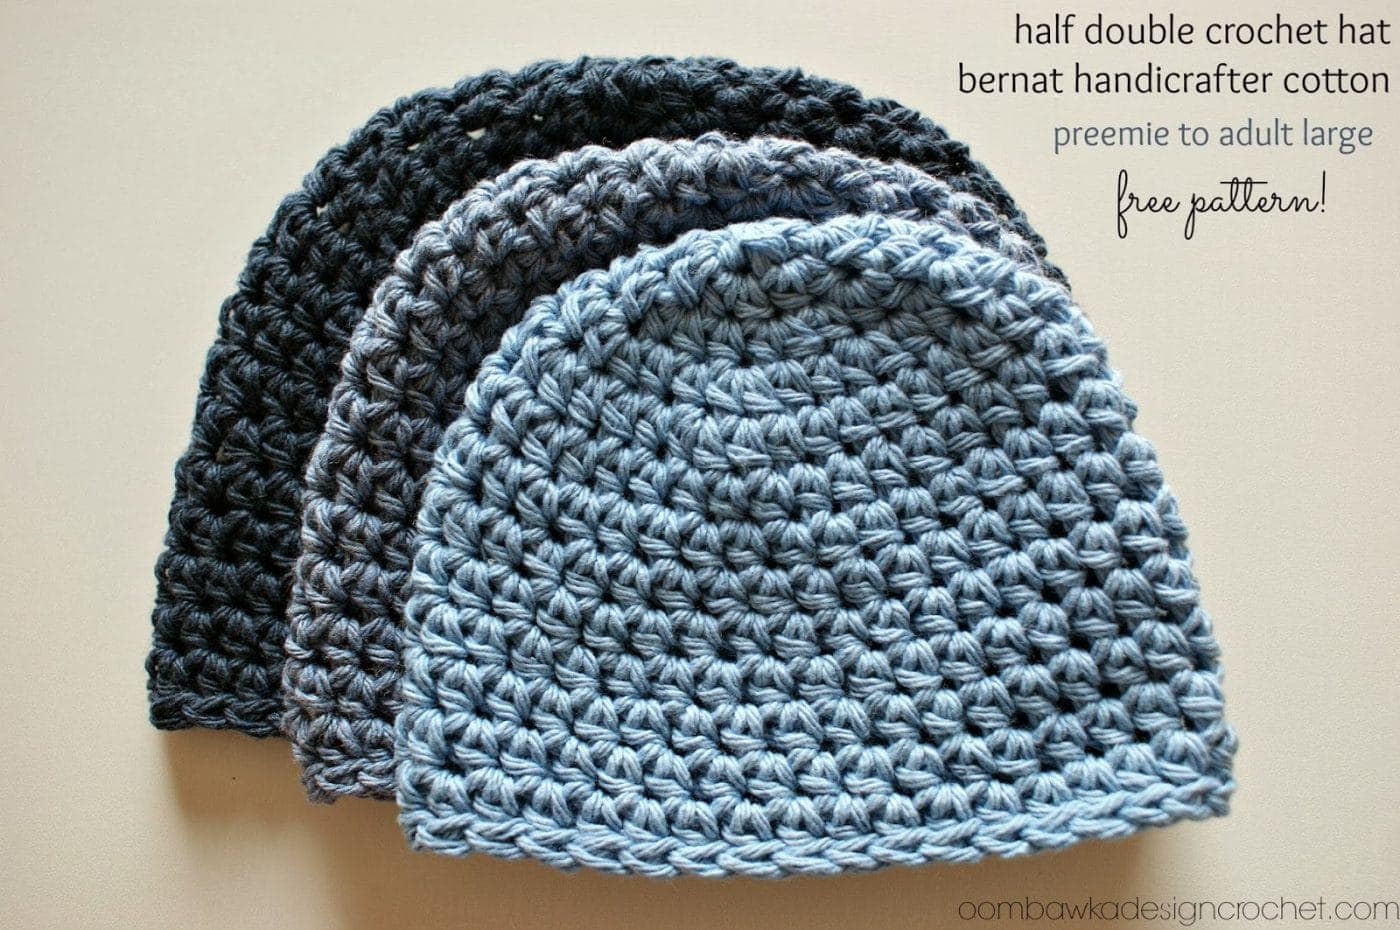 Crochet Hat Patterns Free : ... Double Crochet Hat Pattern #2 Free Pattern ? Oombawka Design Crochet